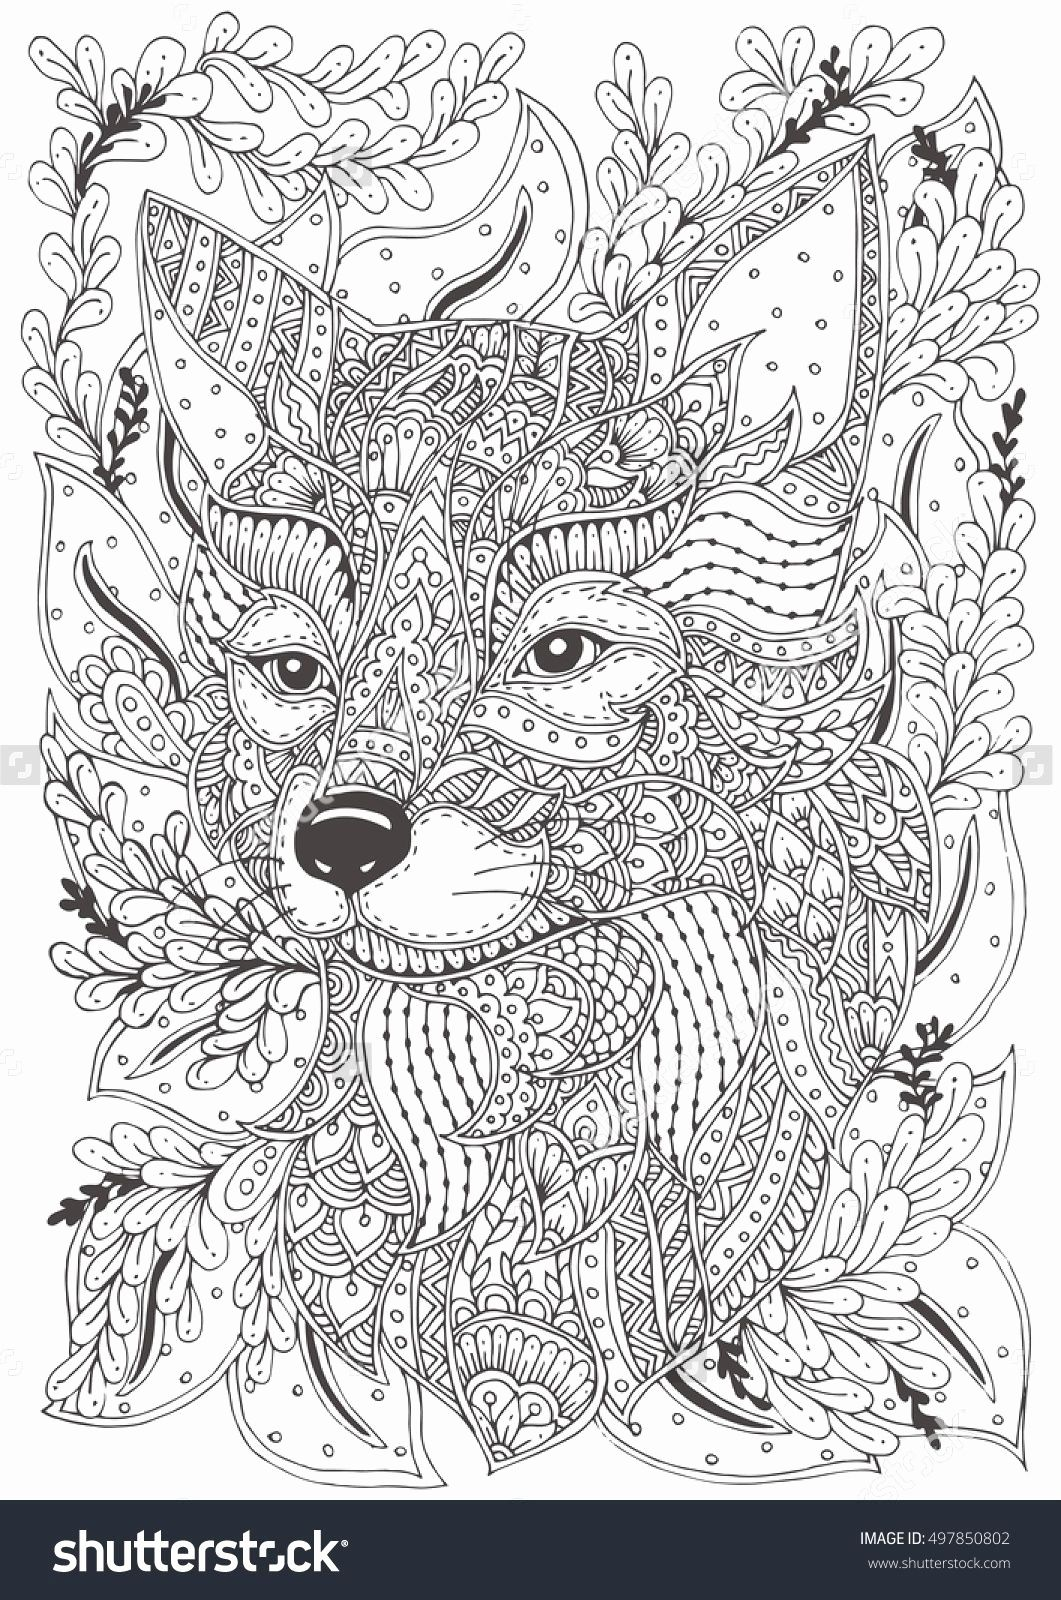 Fox Hard Coloring Pages For Kids In 2020 Fox Coloring Page Animal Coloring Pages Pattern Coloring Pages